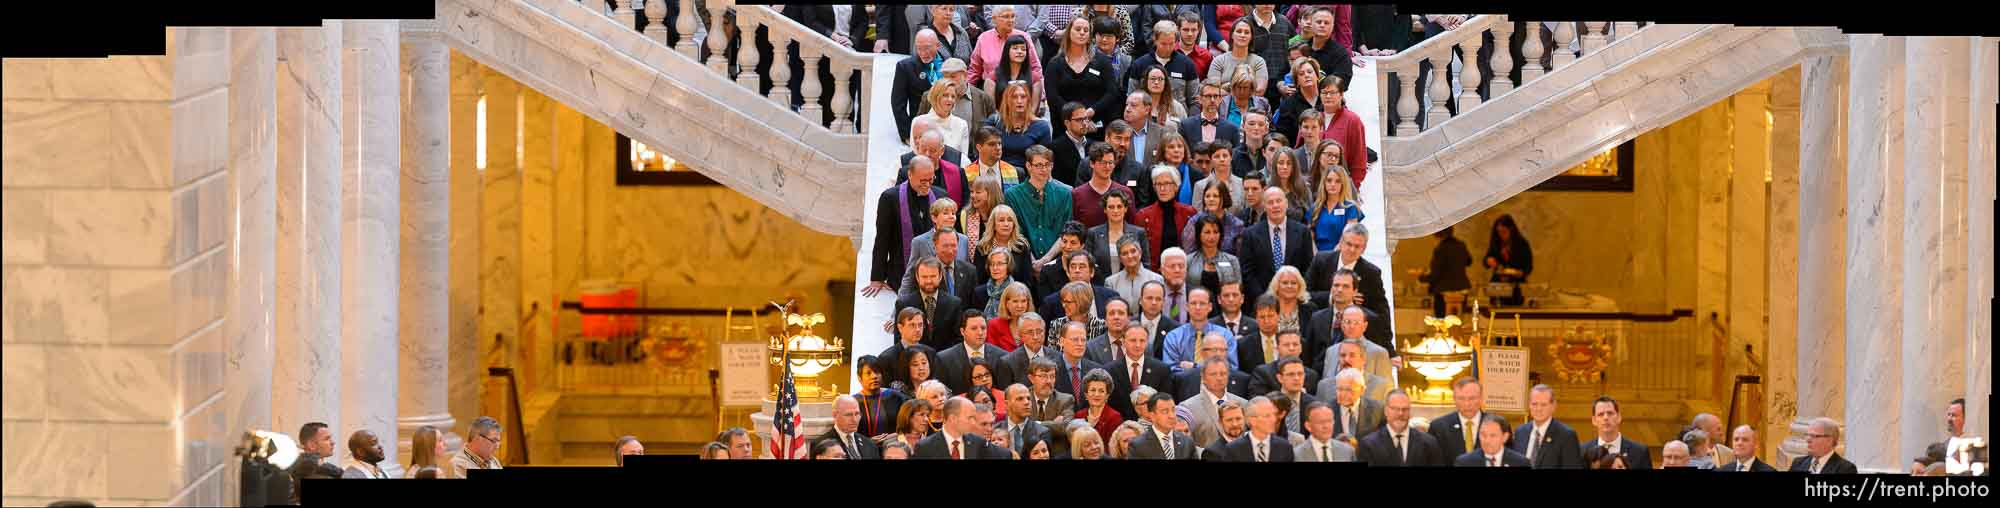 Gov. Gary Herbert signs into law SB296, which gives statewide non-discrimination protections to the gay and transgender community, while providing safeguards for religious liberty, in the rotunda of the State Capitol Building in Salt Lake City, Thursday March 12, 2015.